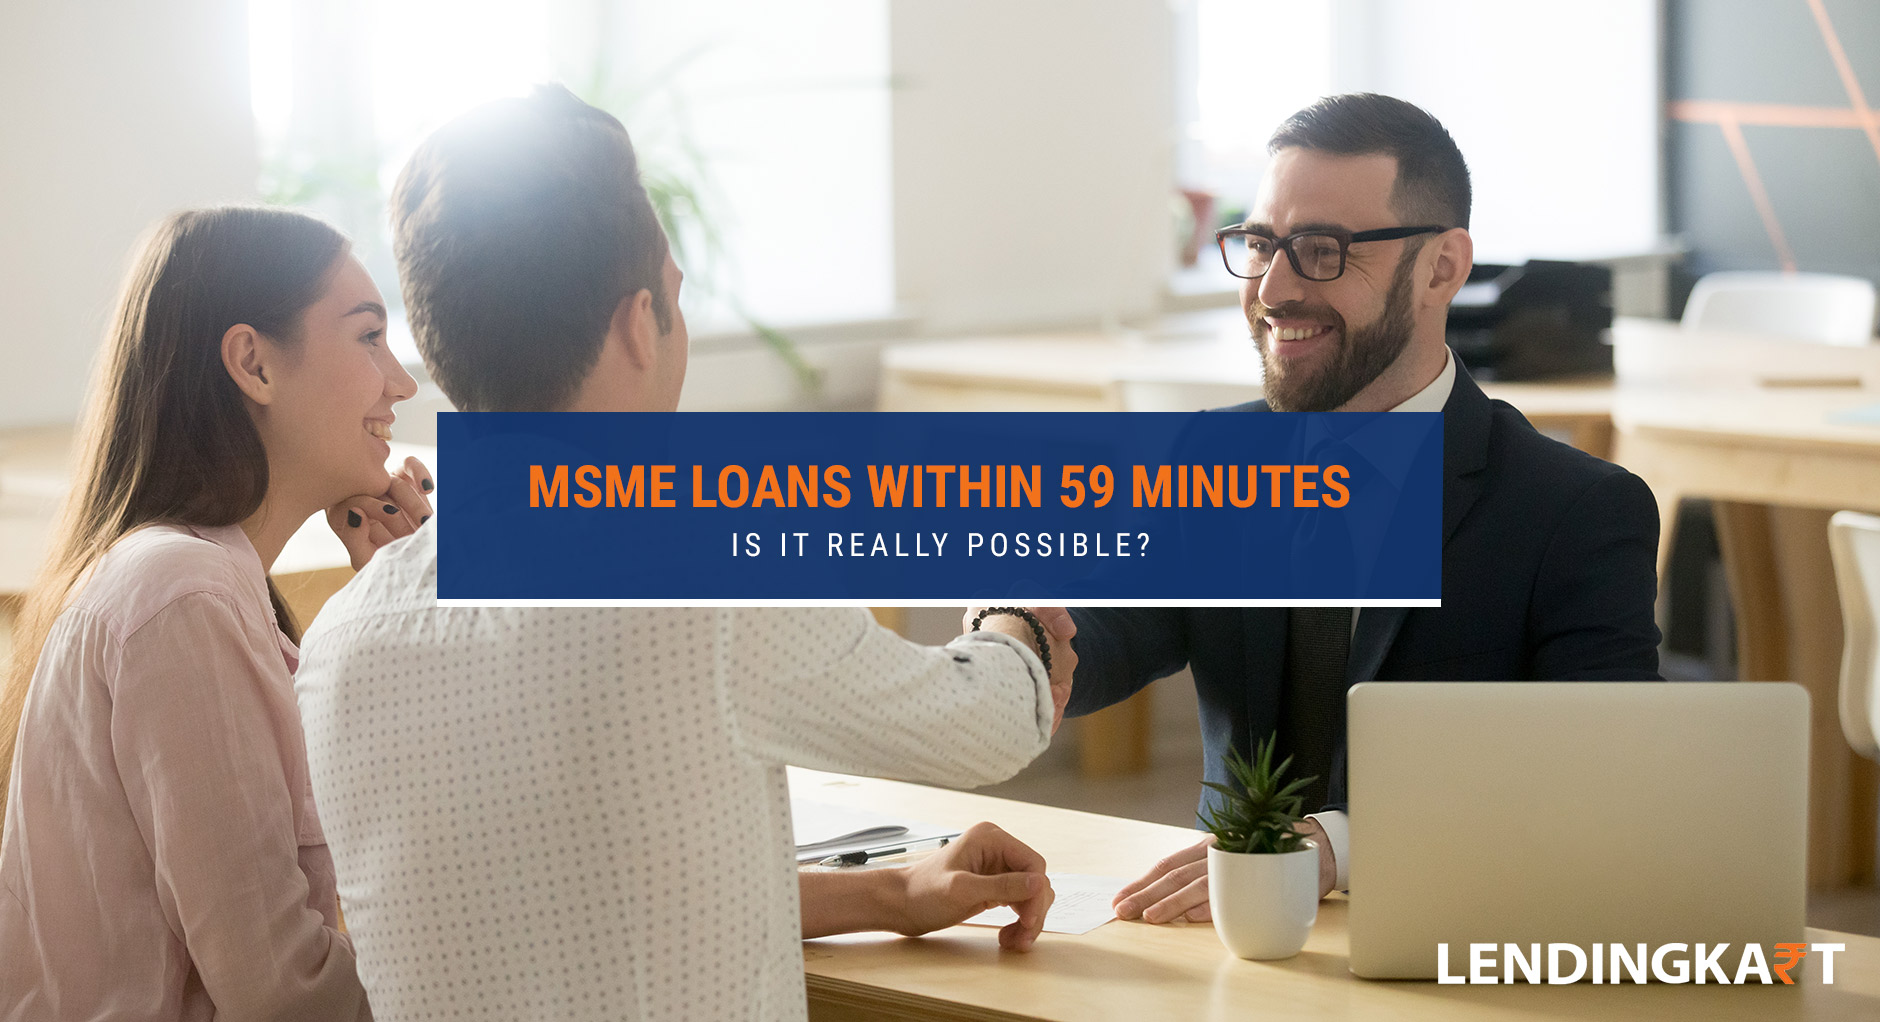 MSME Loans within 59 Minutes Is it really possible